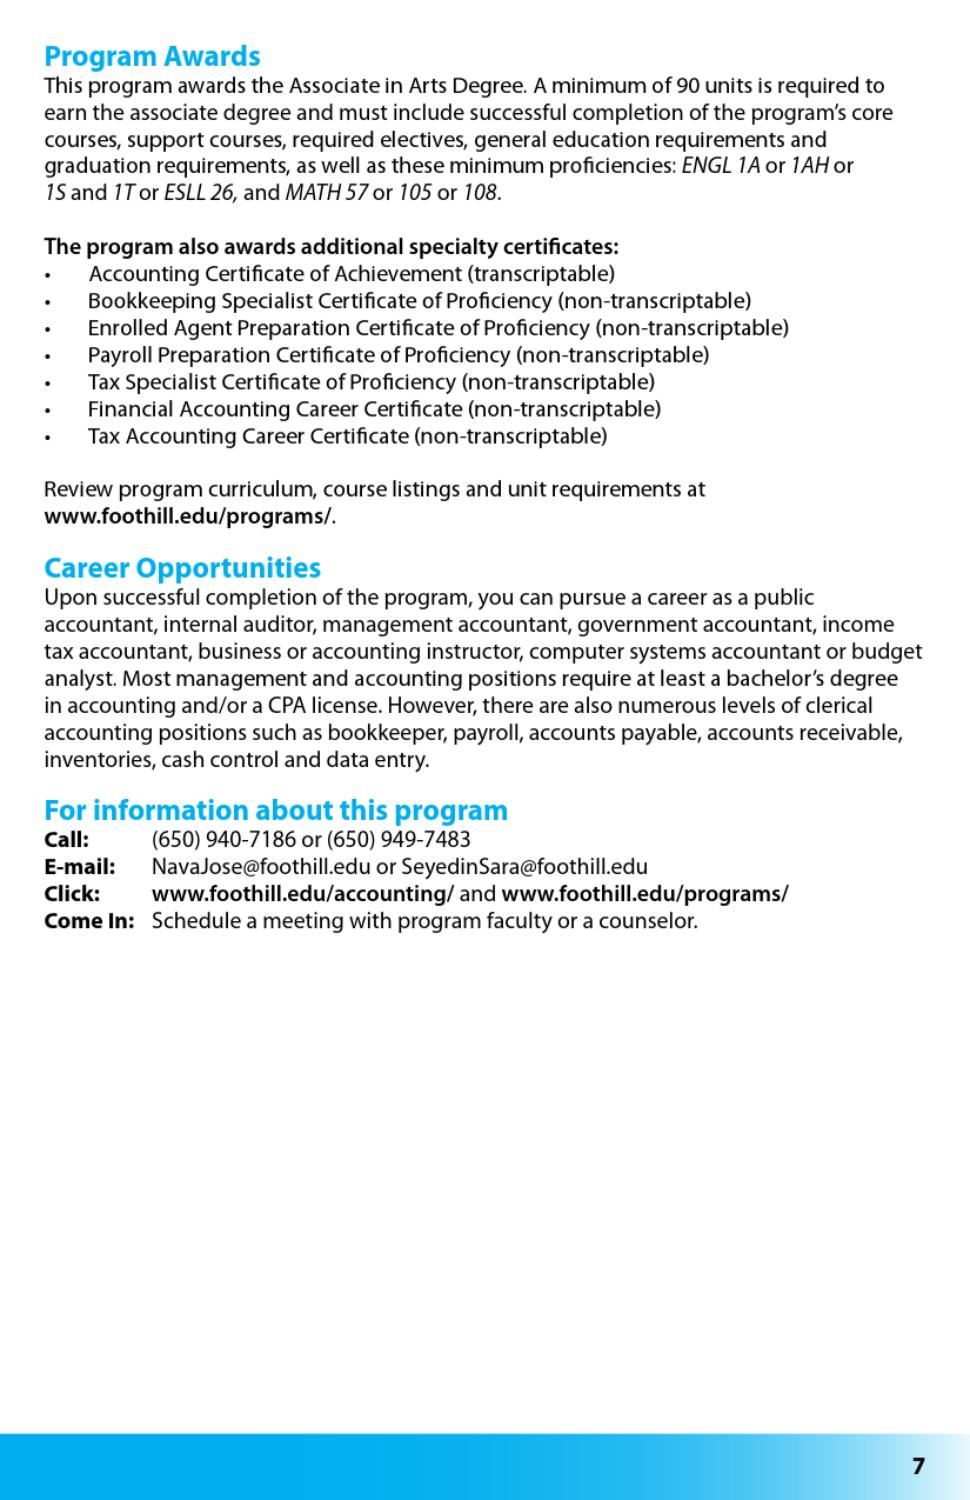 Foothill College Career Programs By Foothill College Issuu